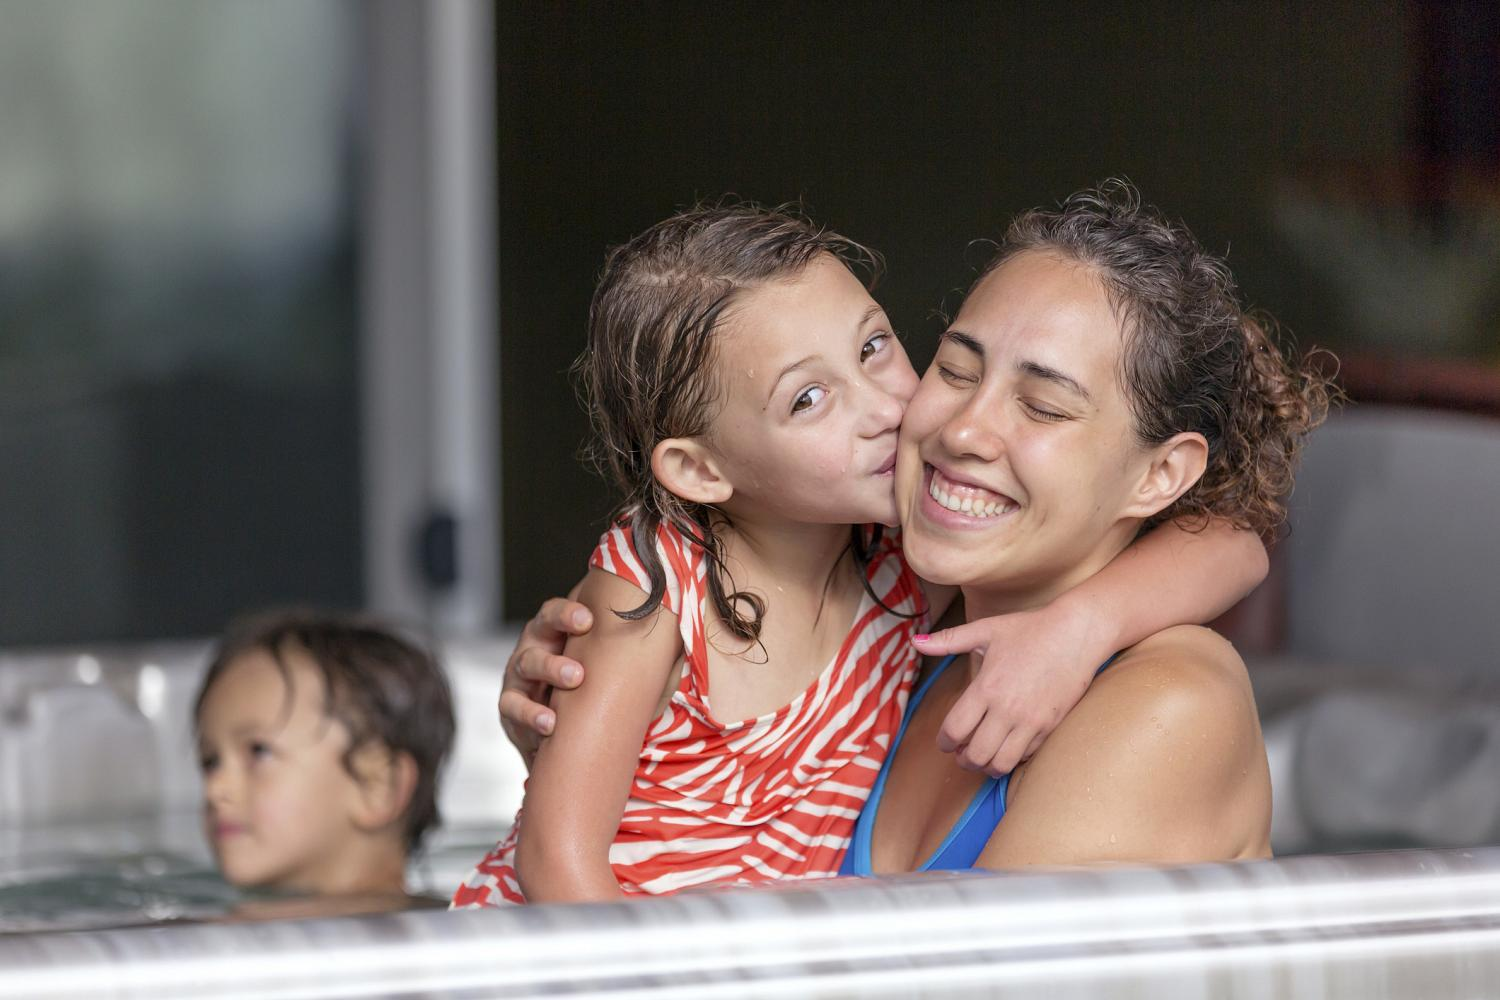 6 reasons to surprise mom with a hot tub this Mother's Day